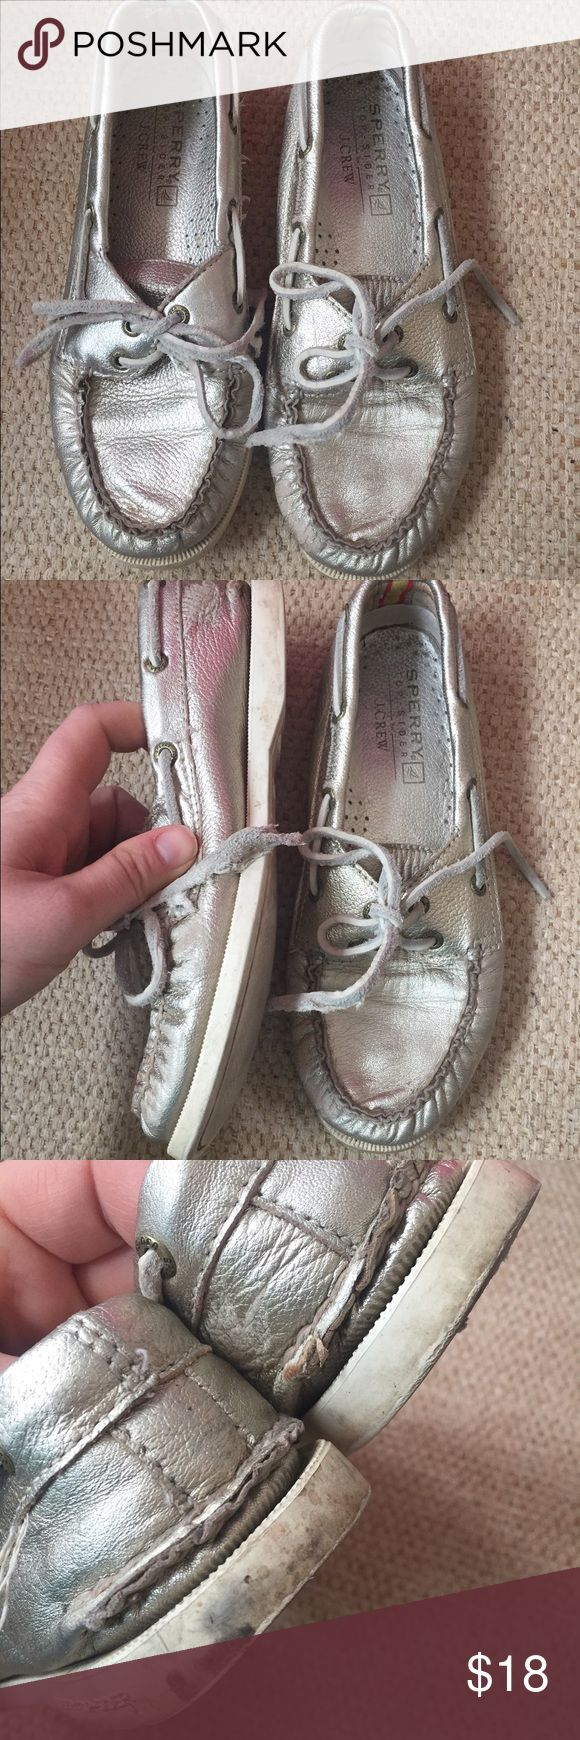 Sperry Topsider for Jcrew Metallic boat shoes Metallic Sperry Topsiders for J. Crew boat shoes in a women's size 6.5. Structurally they are still in good condition but they do have various dirty spots and marks on them. #sperrys #jcrew #jcrewforsale #metallic #shoefie Sperry Top-Sider Shoes Flats & Loafers